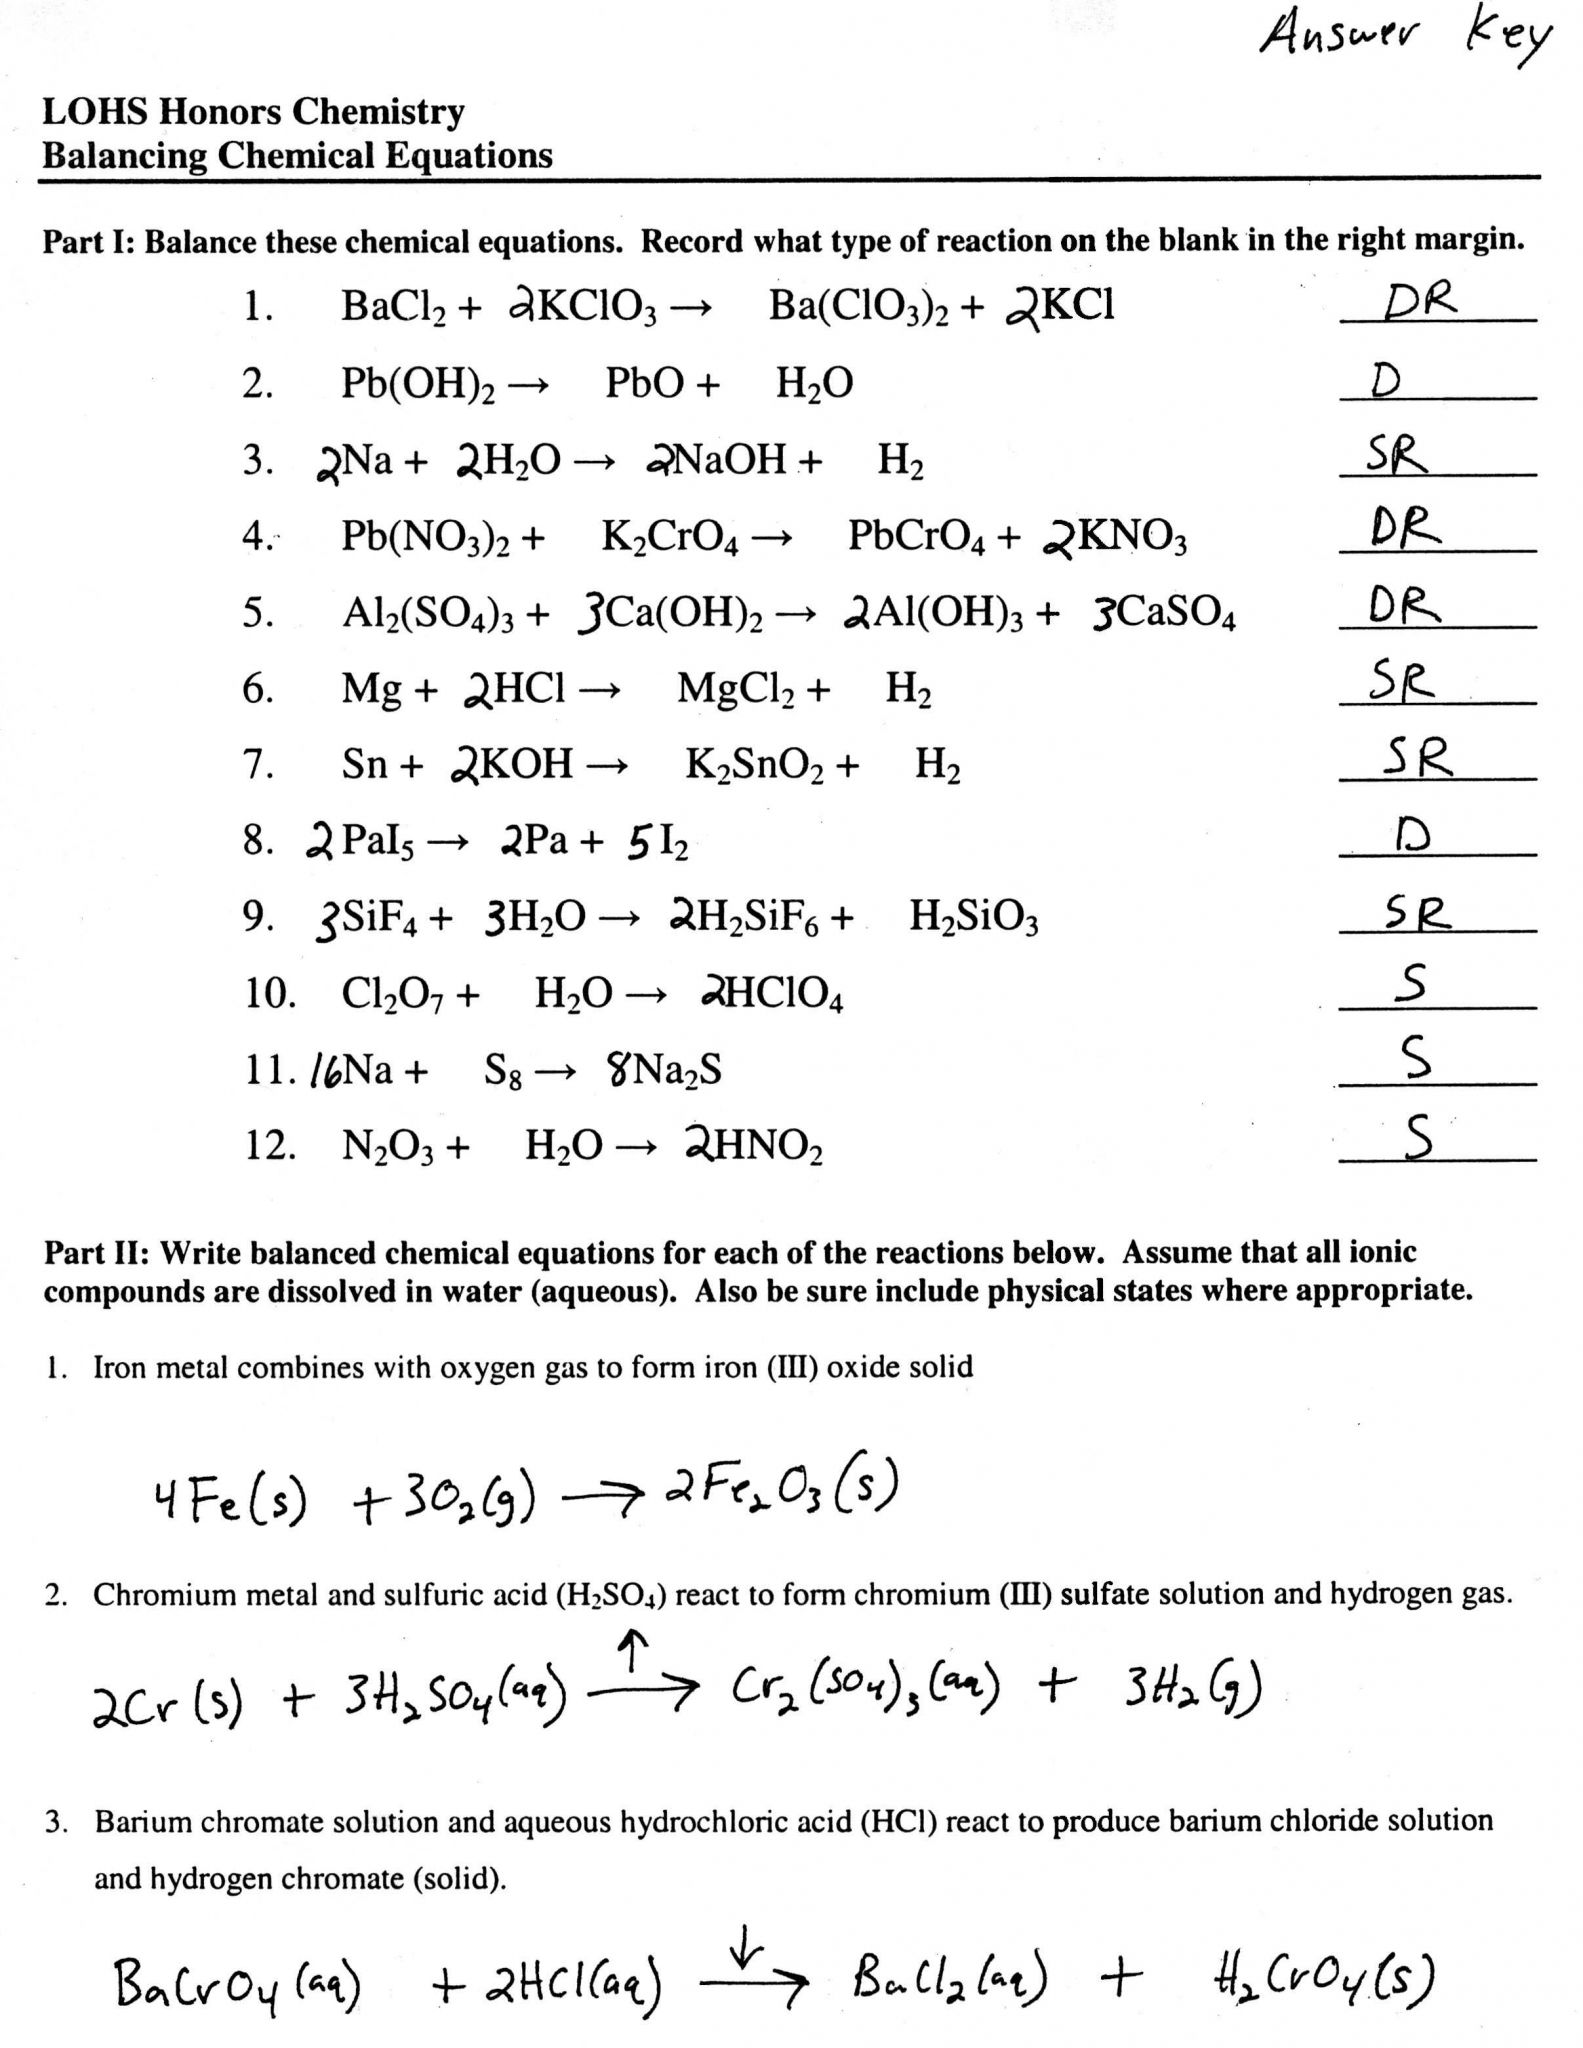 Balancing Nuclear Equations Worksheet Along with Nuclear Chemistry Worksheet Answers Fresh Balancing Equations